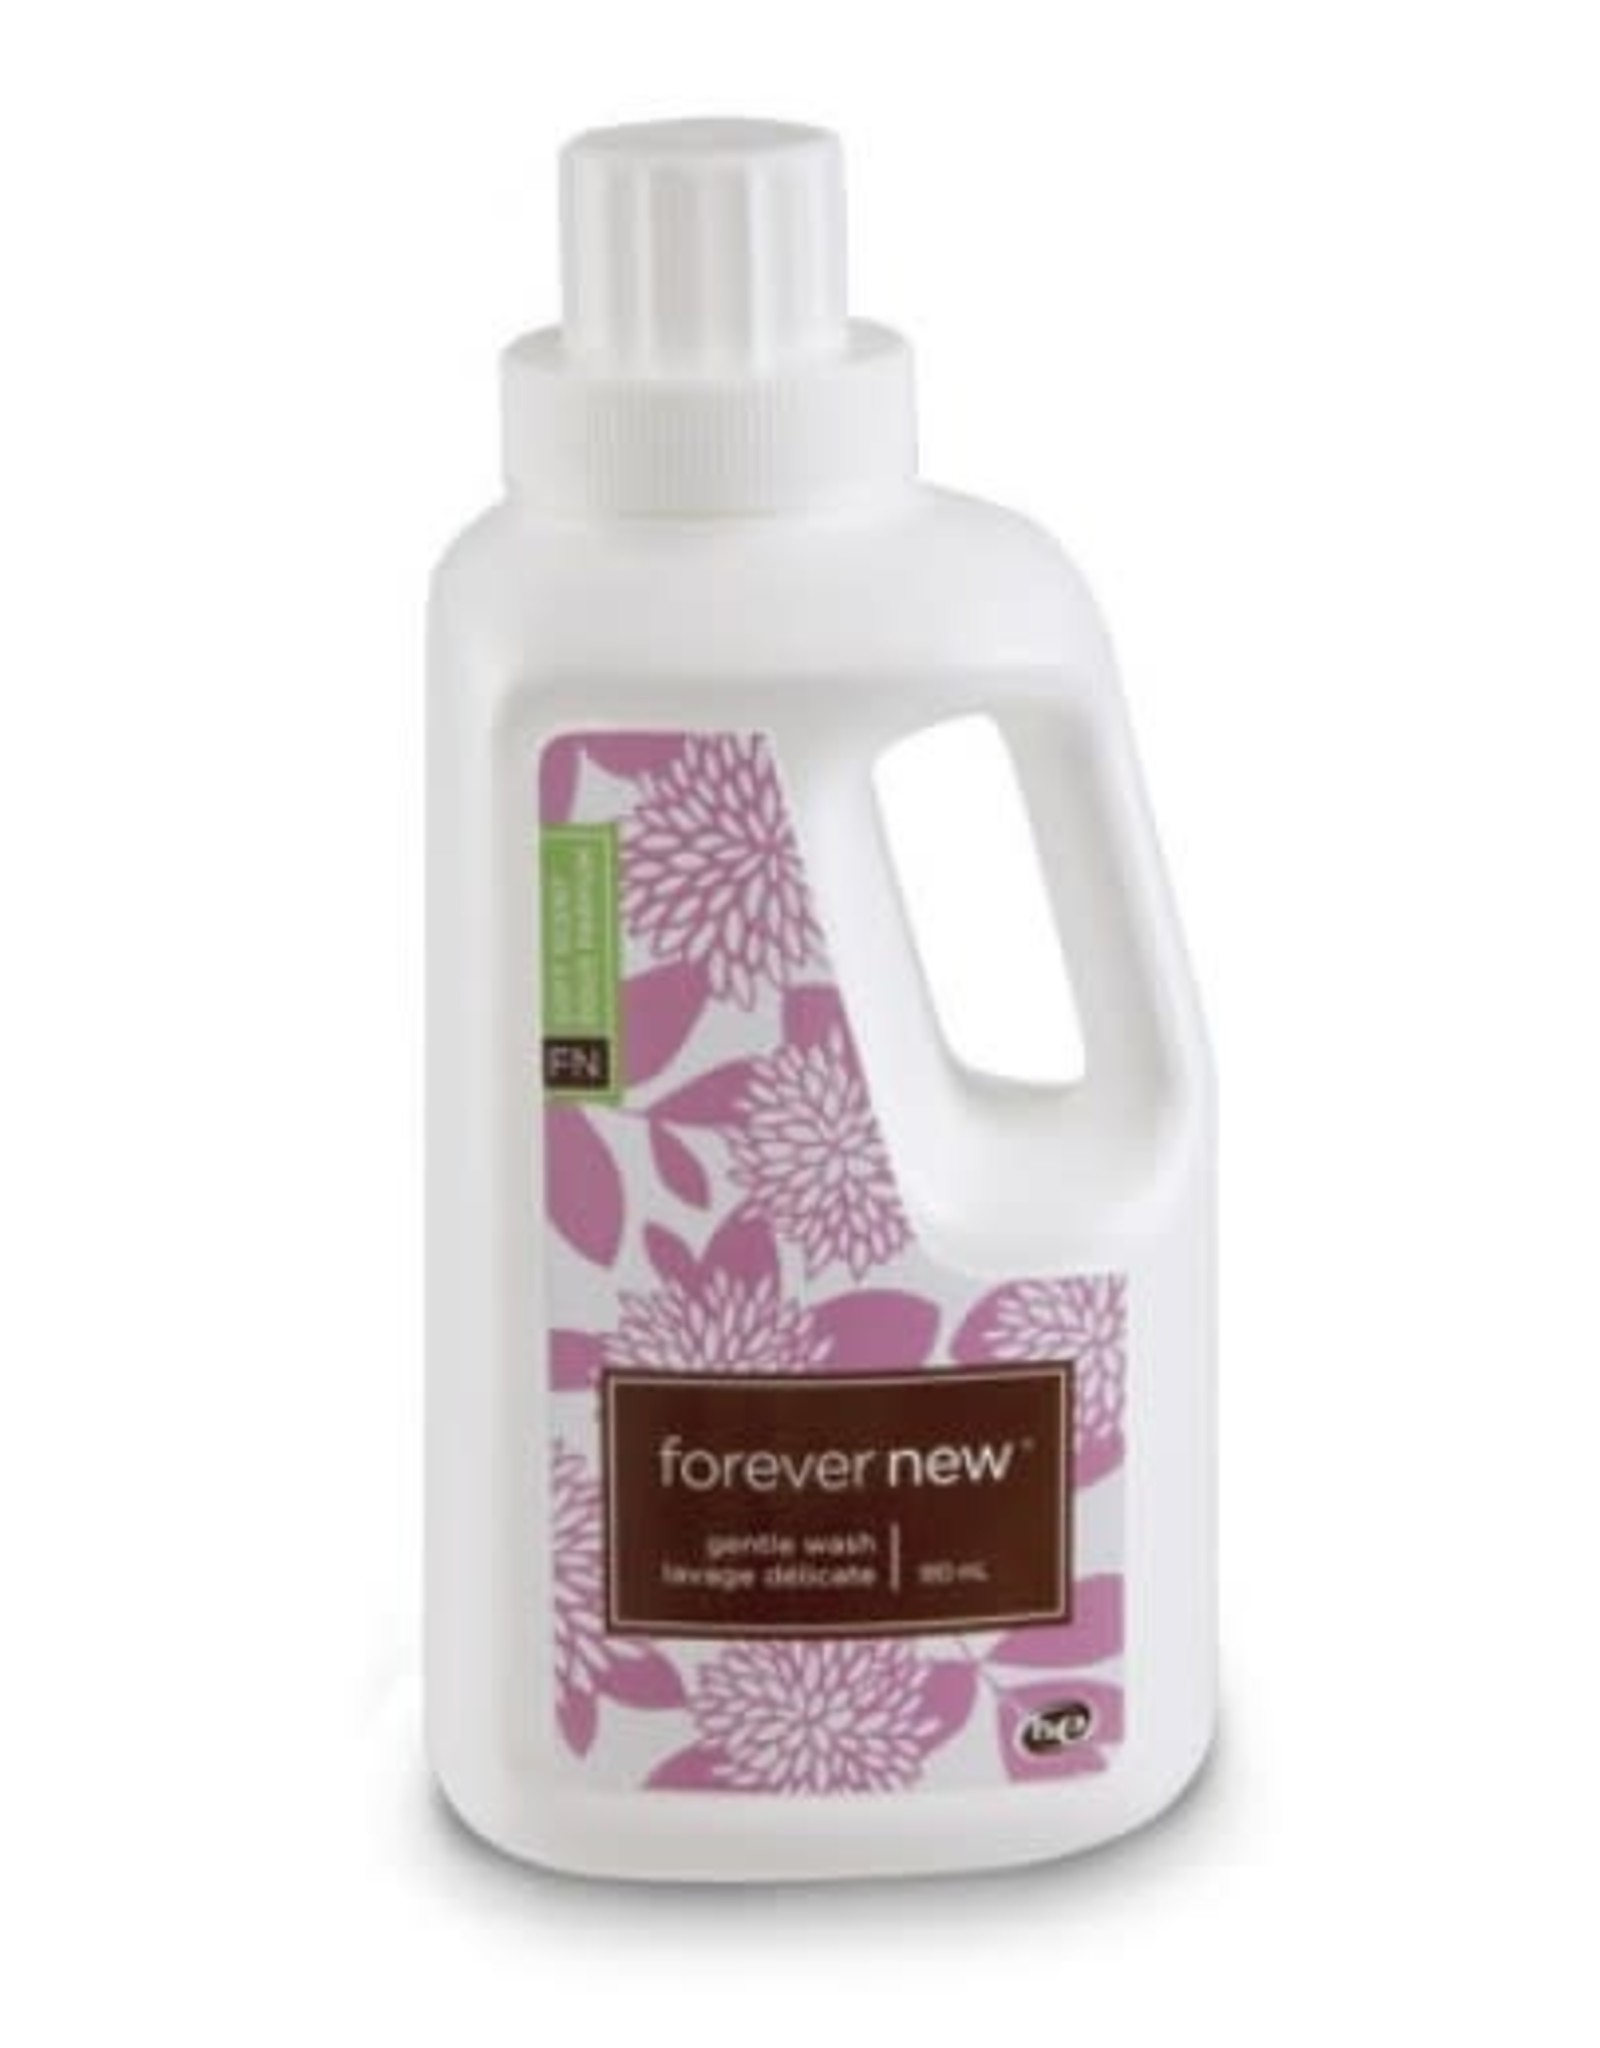 Forever New Liquid Fabric Wash Large